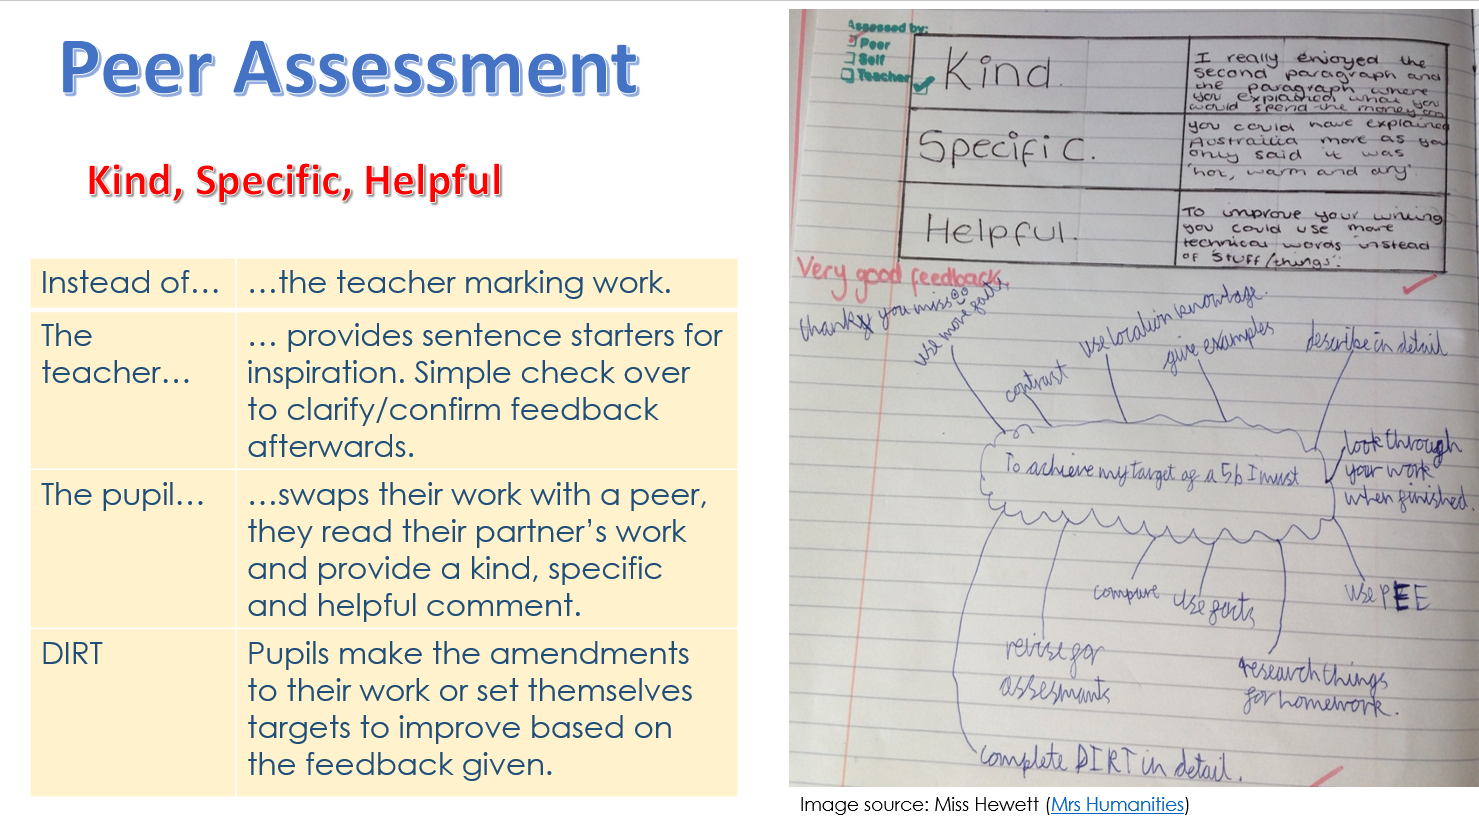 peer assessment kind helpful specific DIRT